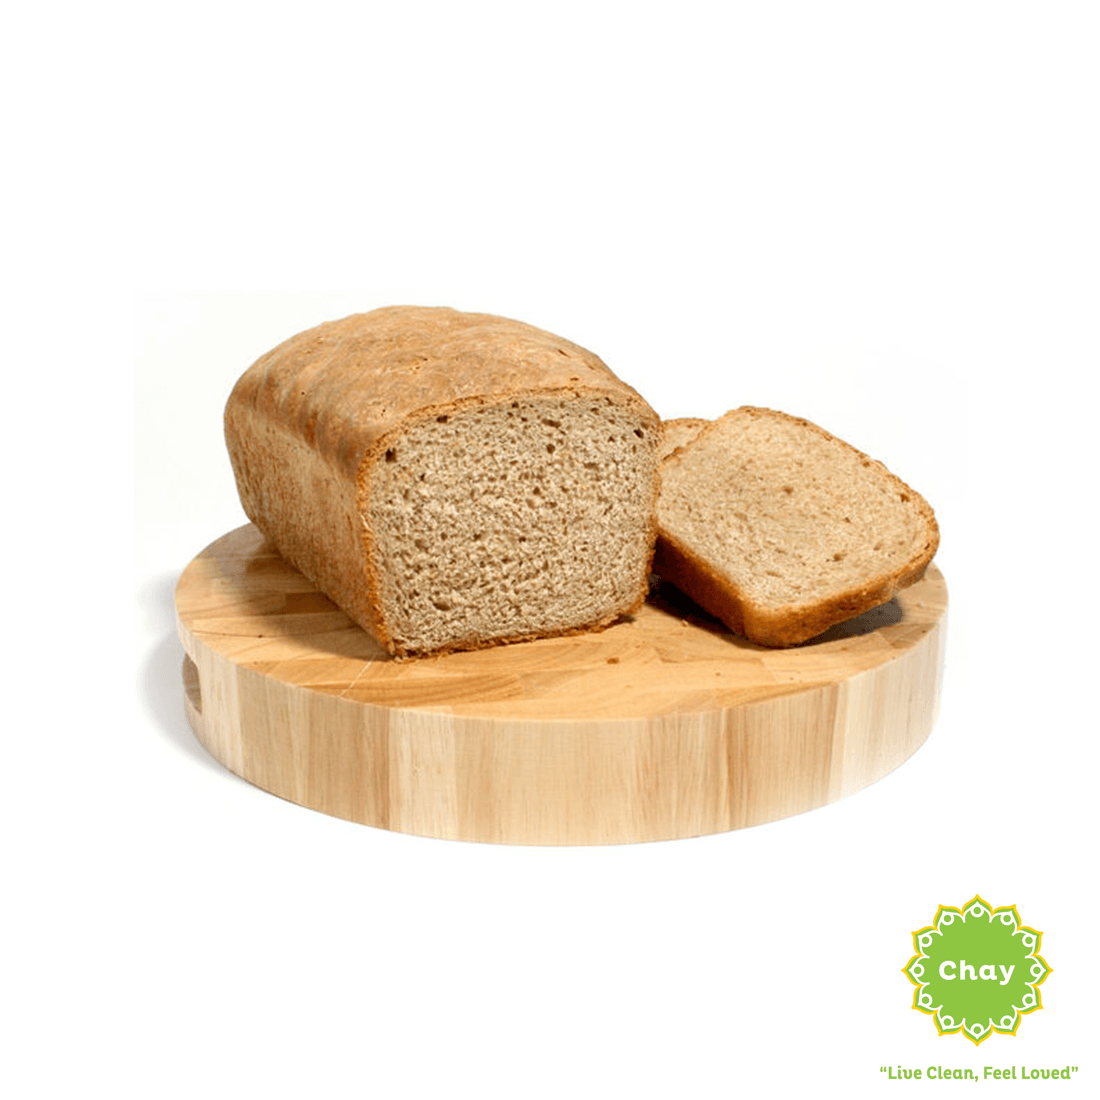 [BK007] Organic Wholemeal Bread - 600g (V) en Harvest Baking